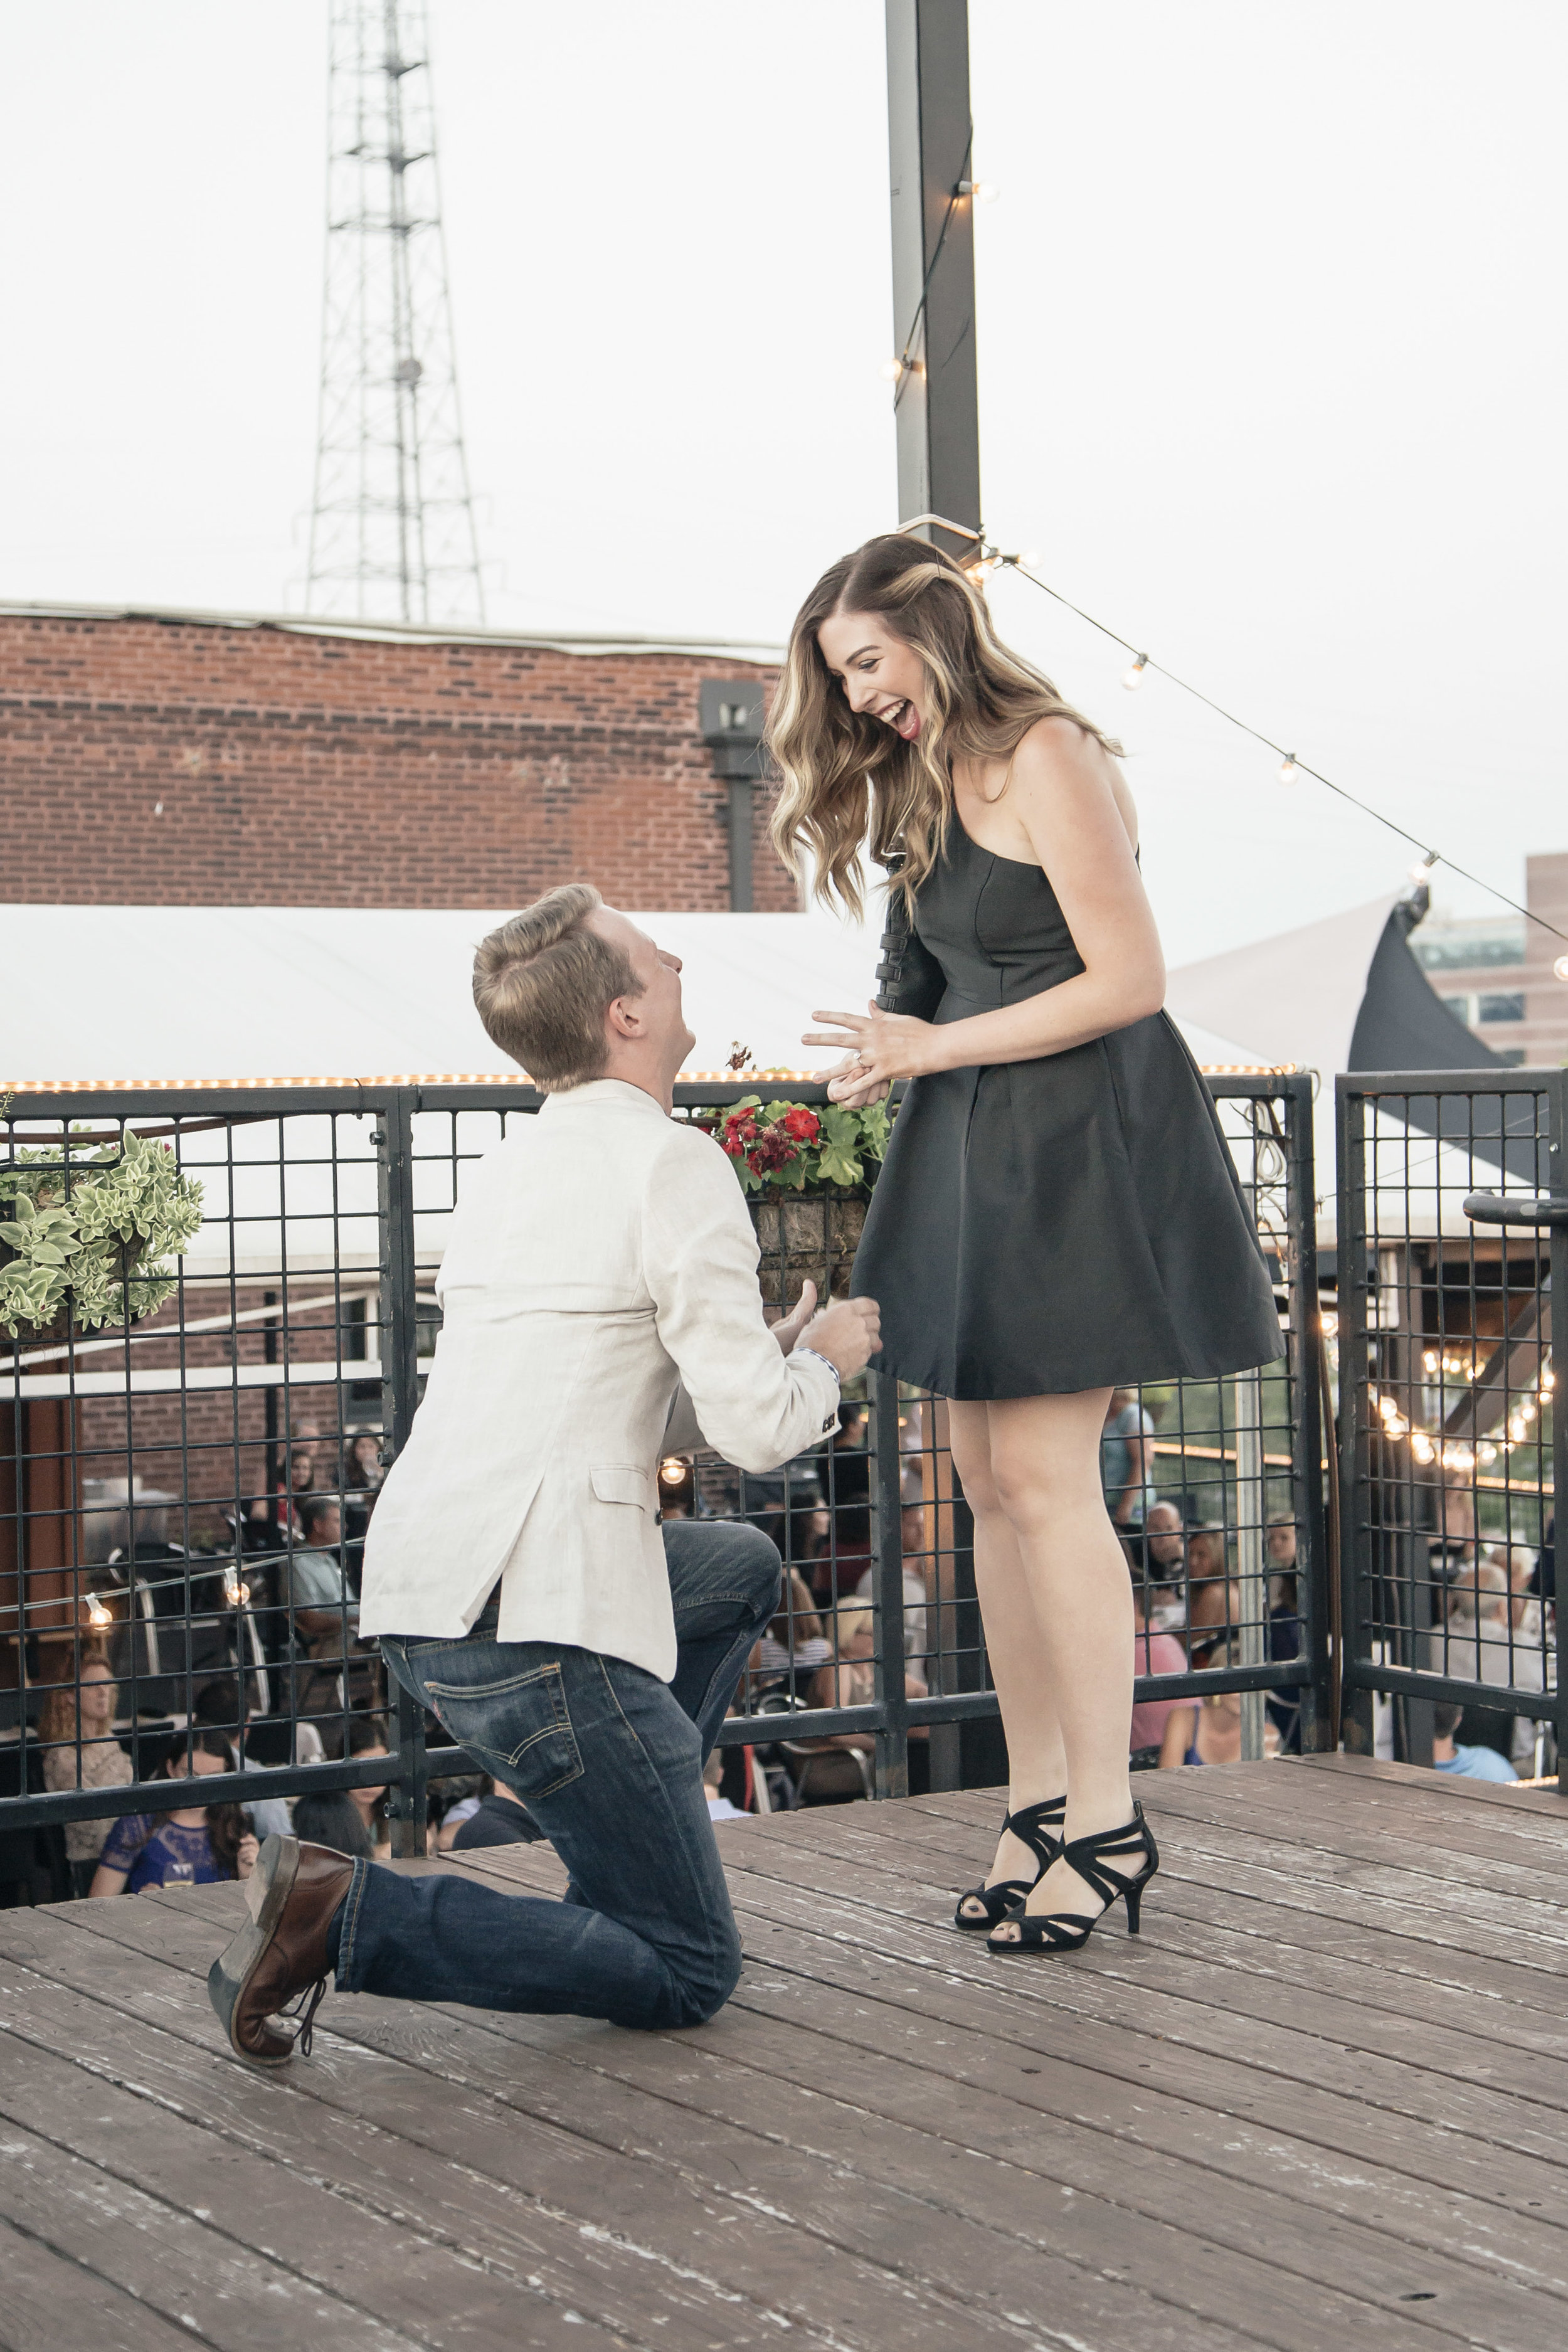 Rebecca_K_Clark_Photography_Engagement_Gallery_Web-4.JPG